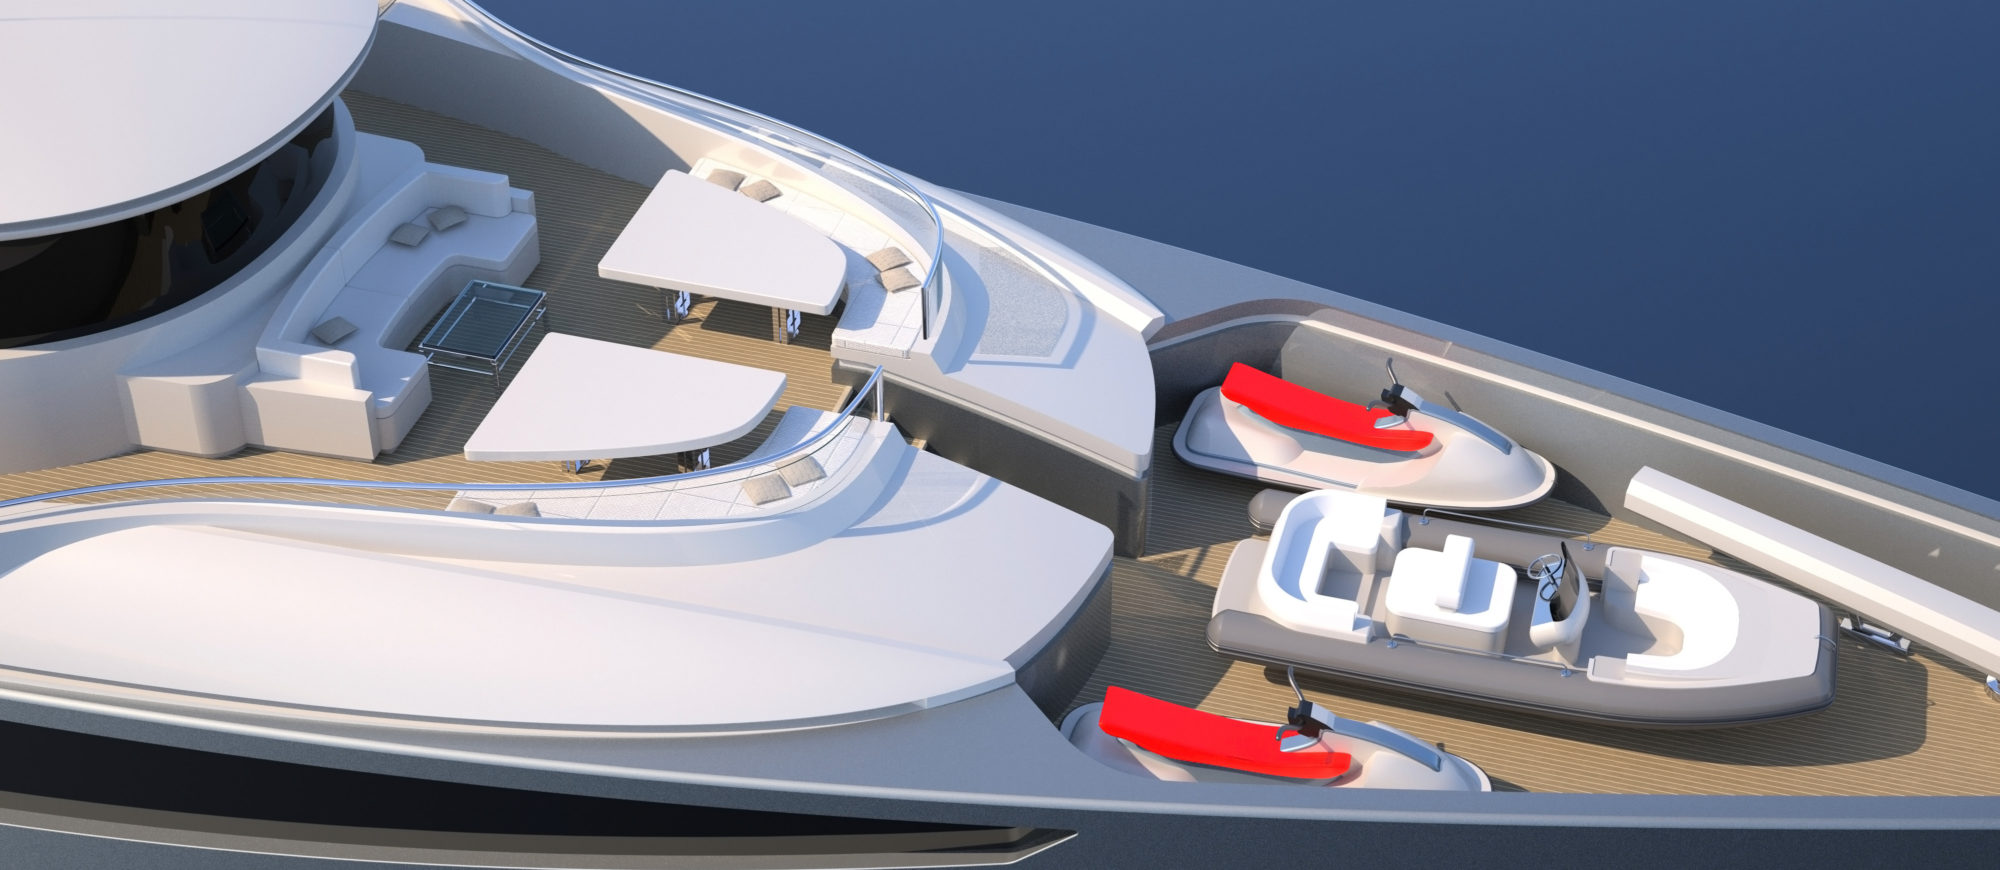 Conrad C166 Superyacht Concept Vallicelli Visualisation Bridge Deck 1